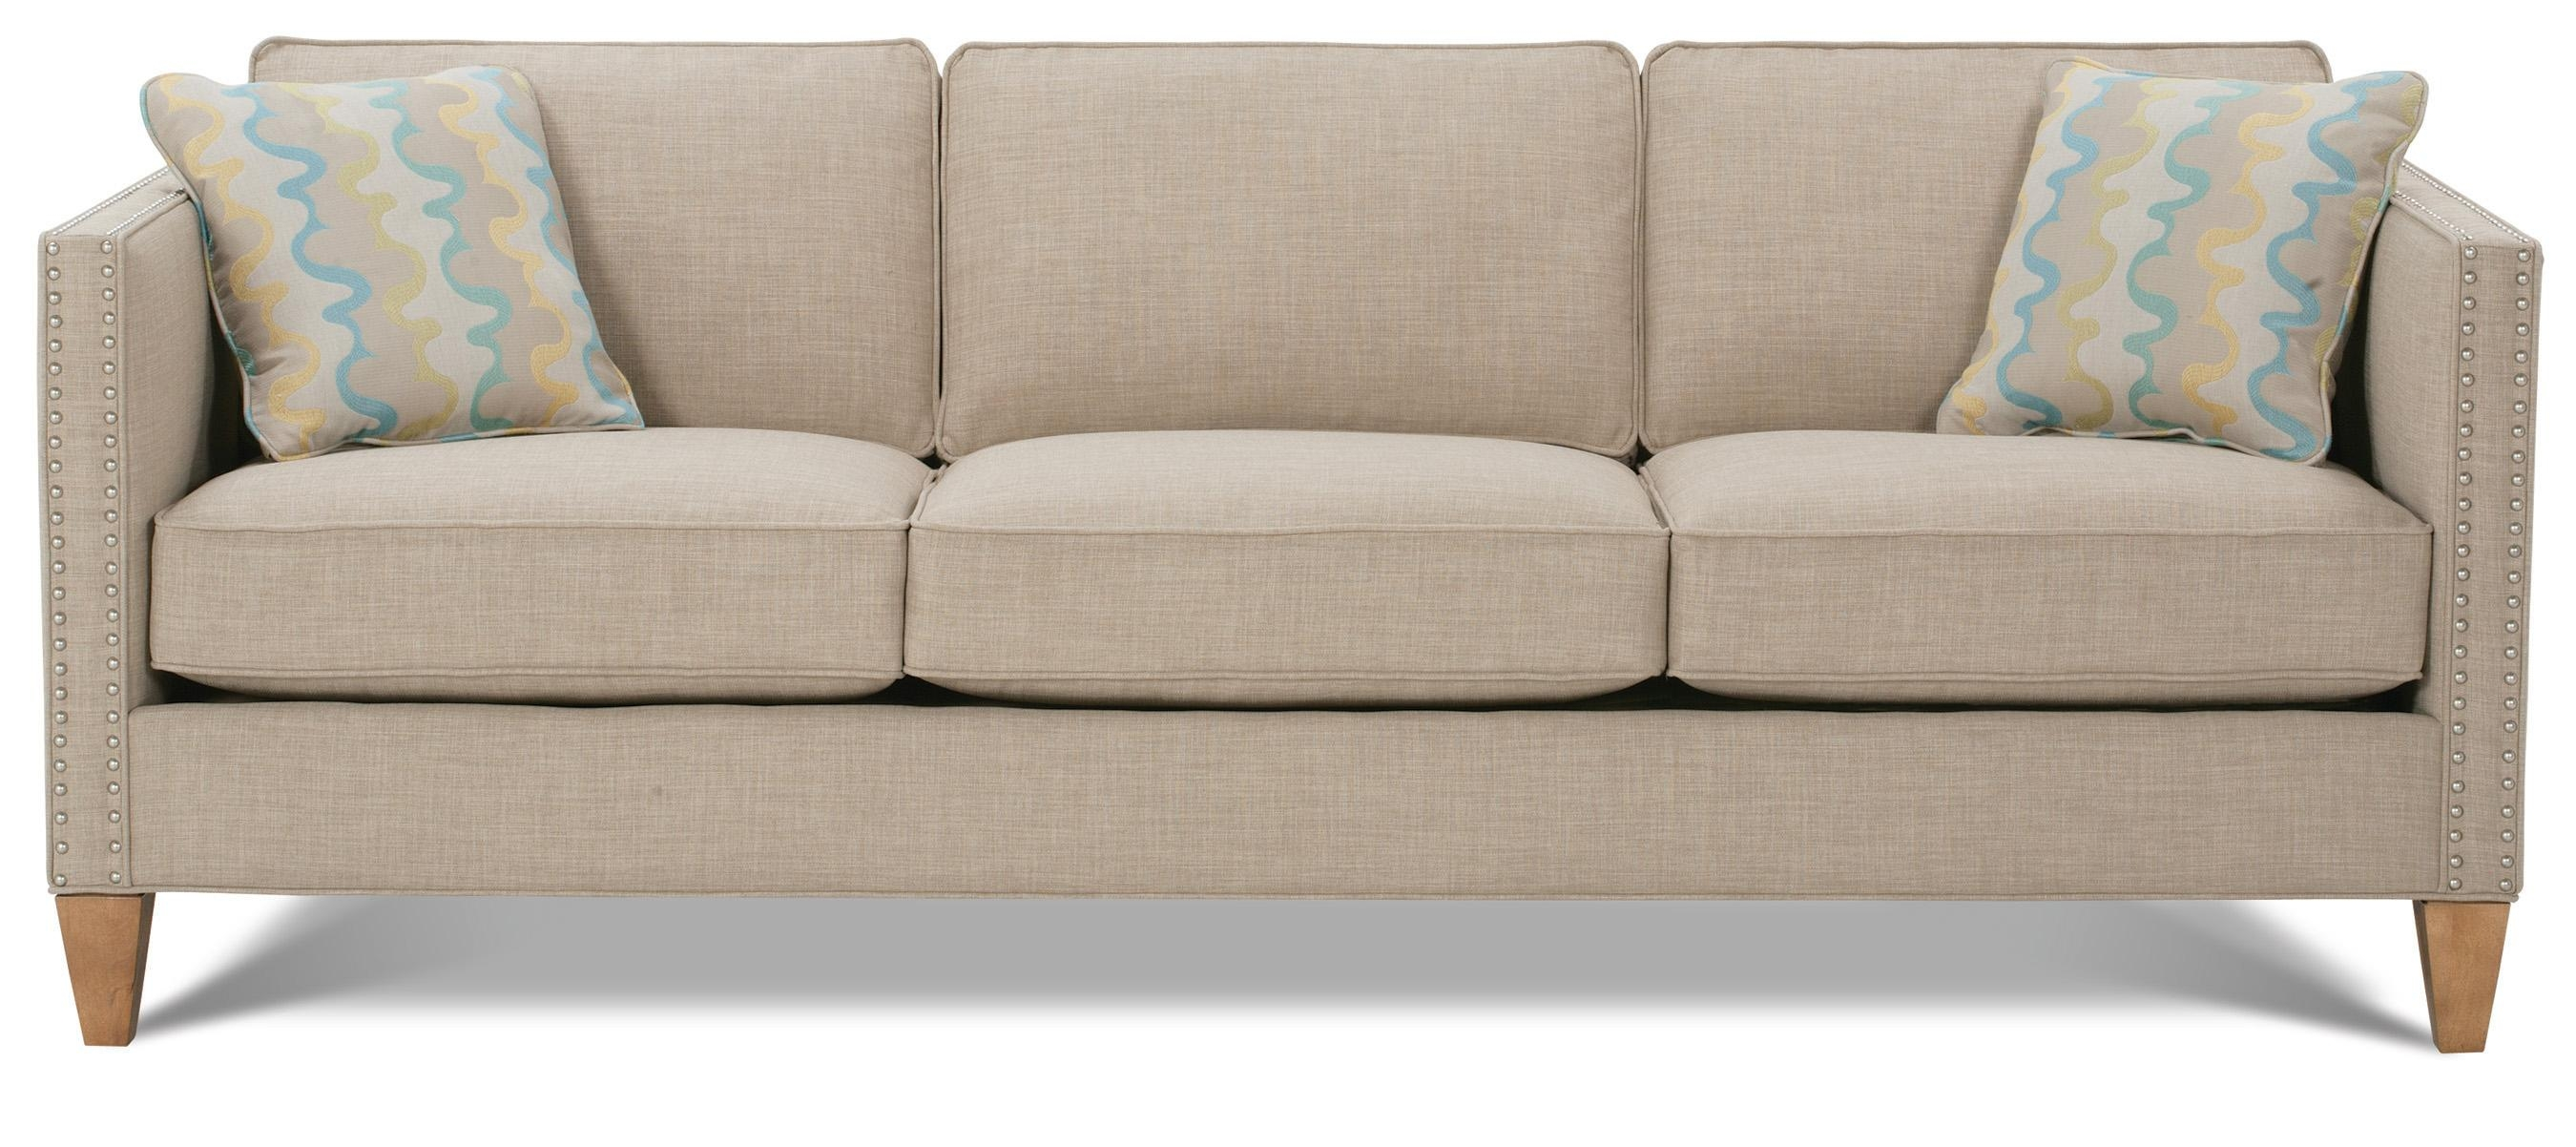 Why Your Home Need A Three Seater Sofa | All White Background For Three Seater Sofas (View 4 of 20)